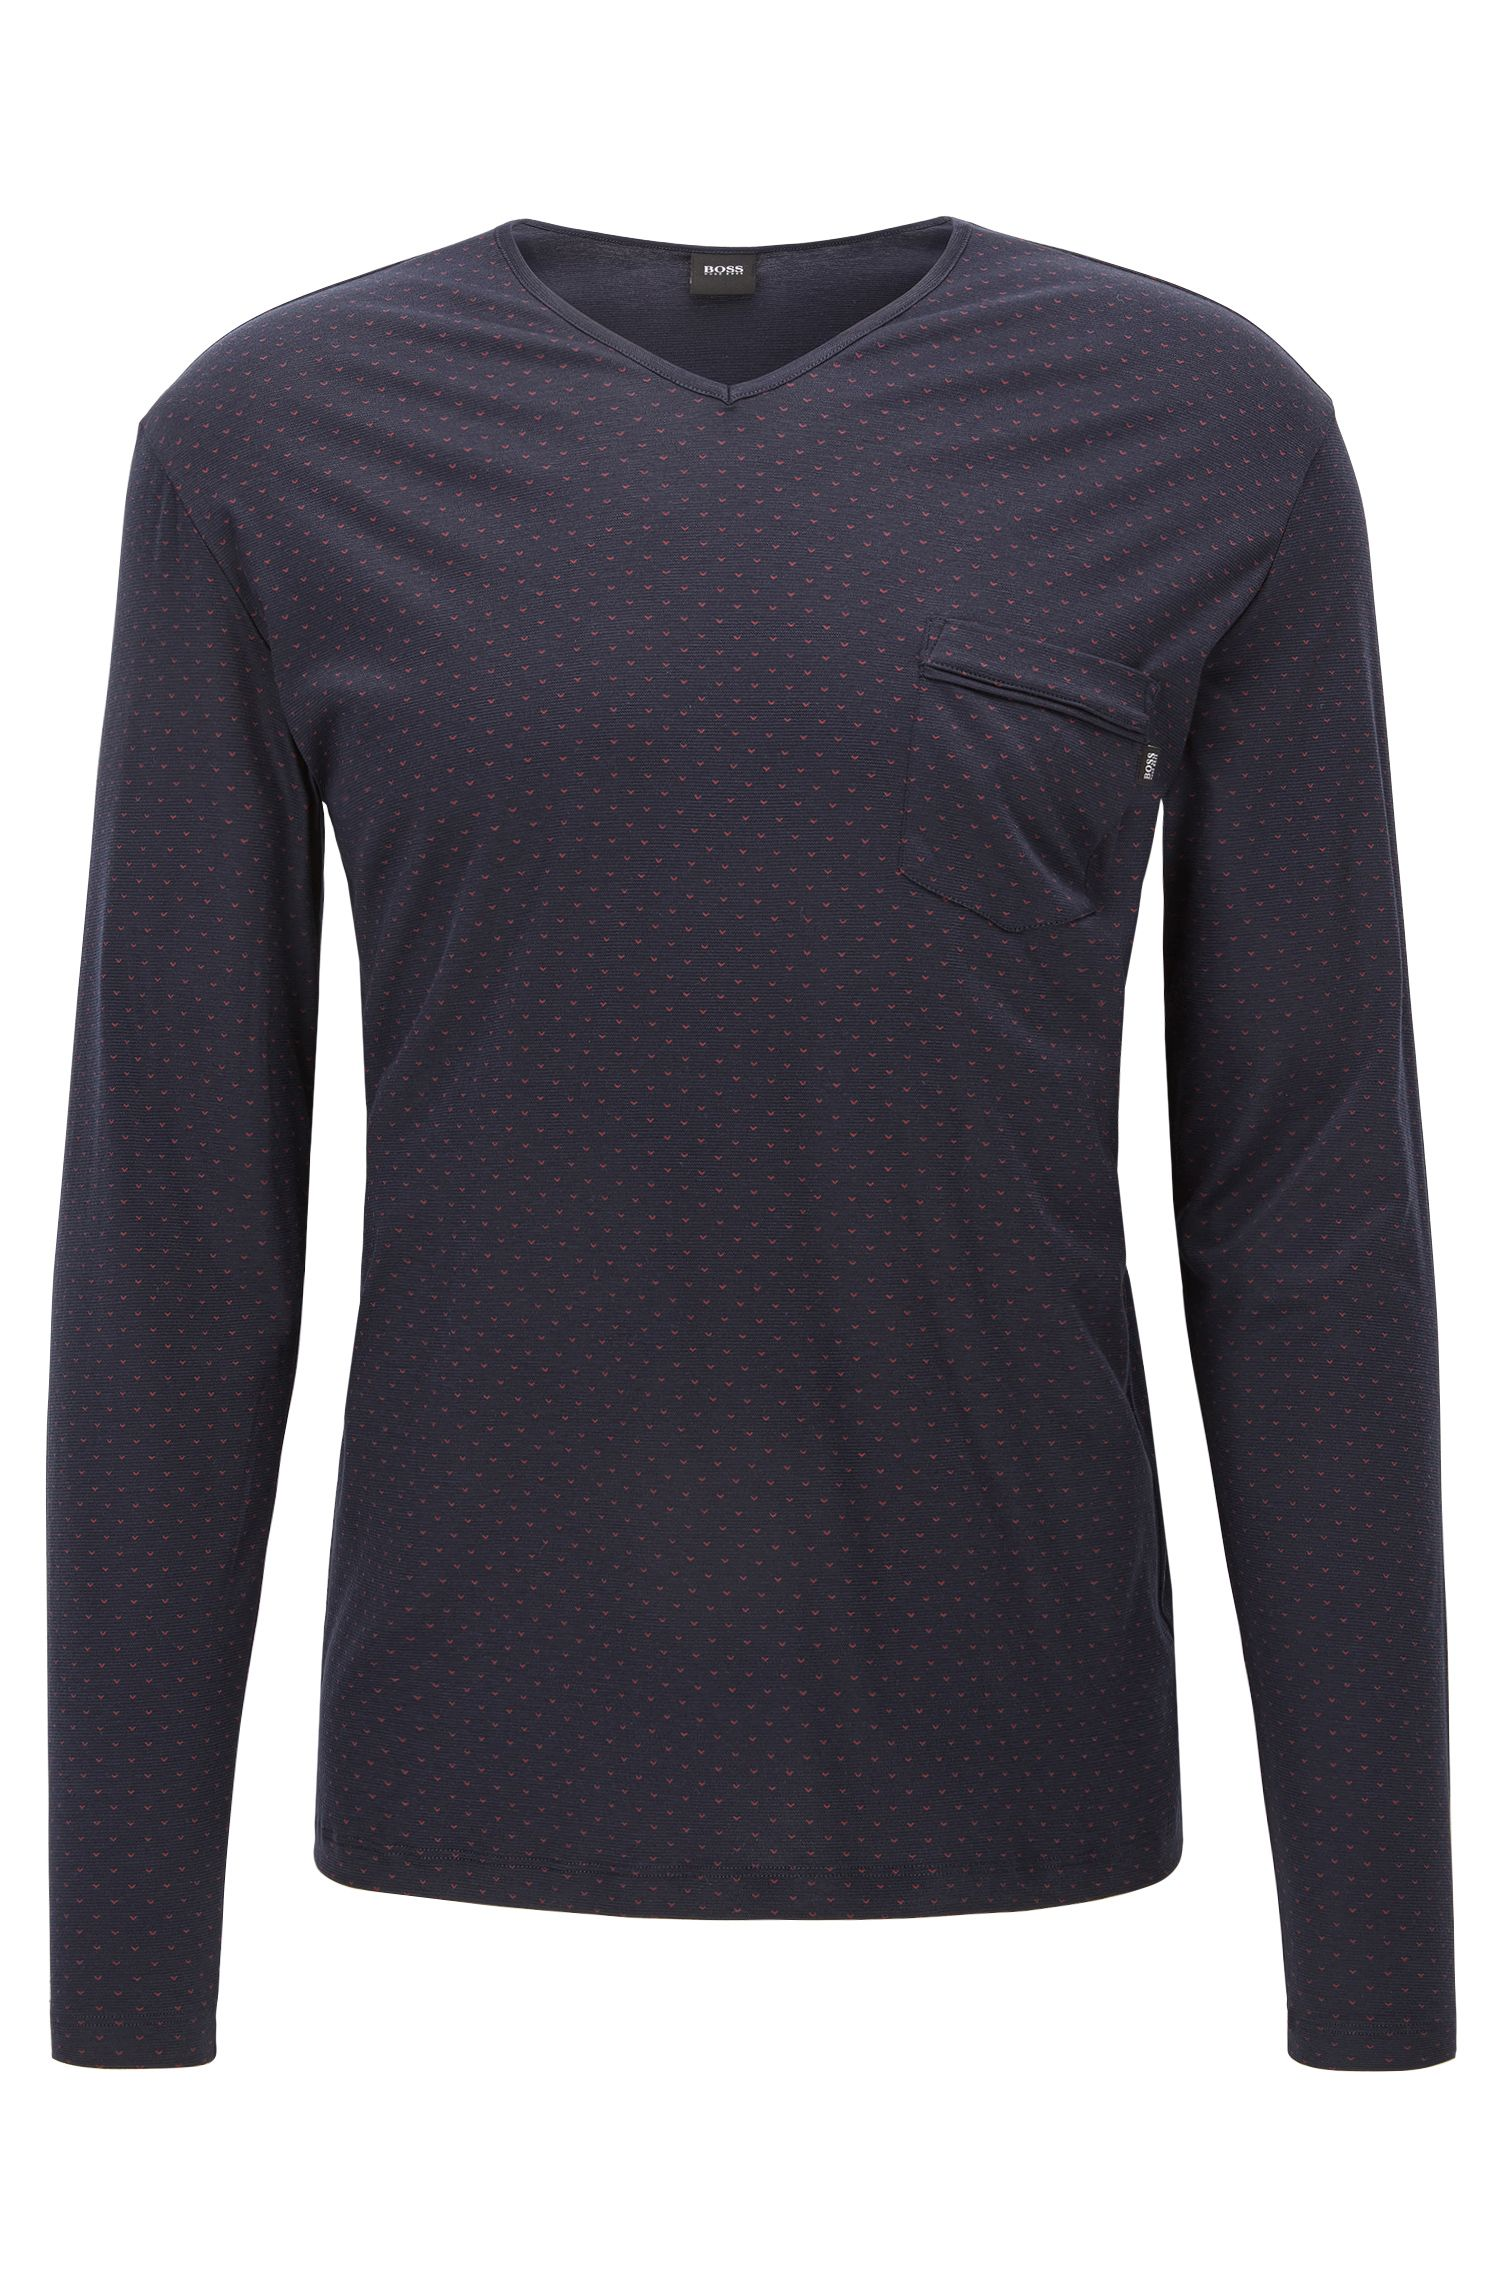 Geo-Print Stretch Jersey Long Sleeve T-Shirt | LS Shirt RN